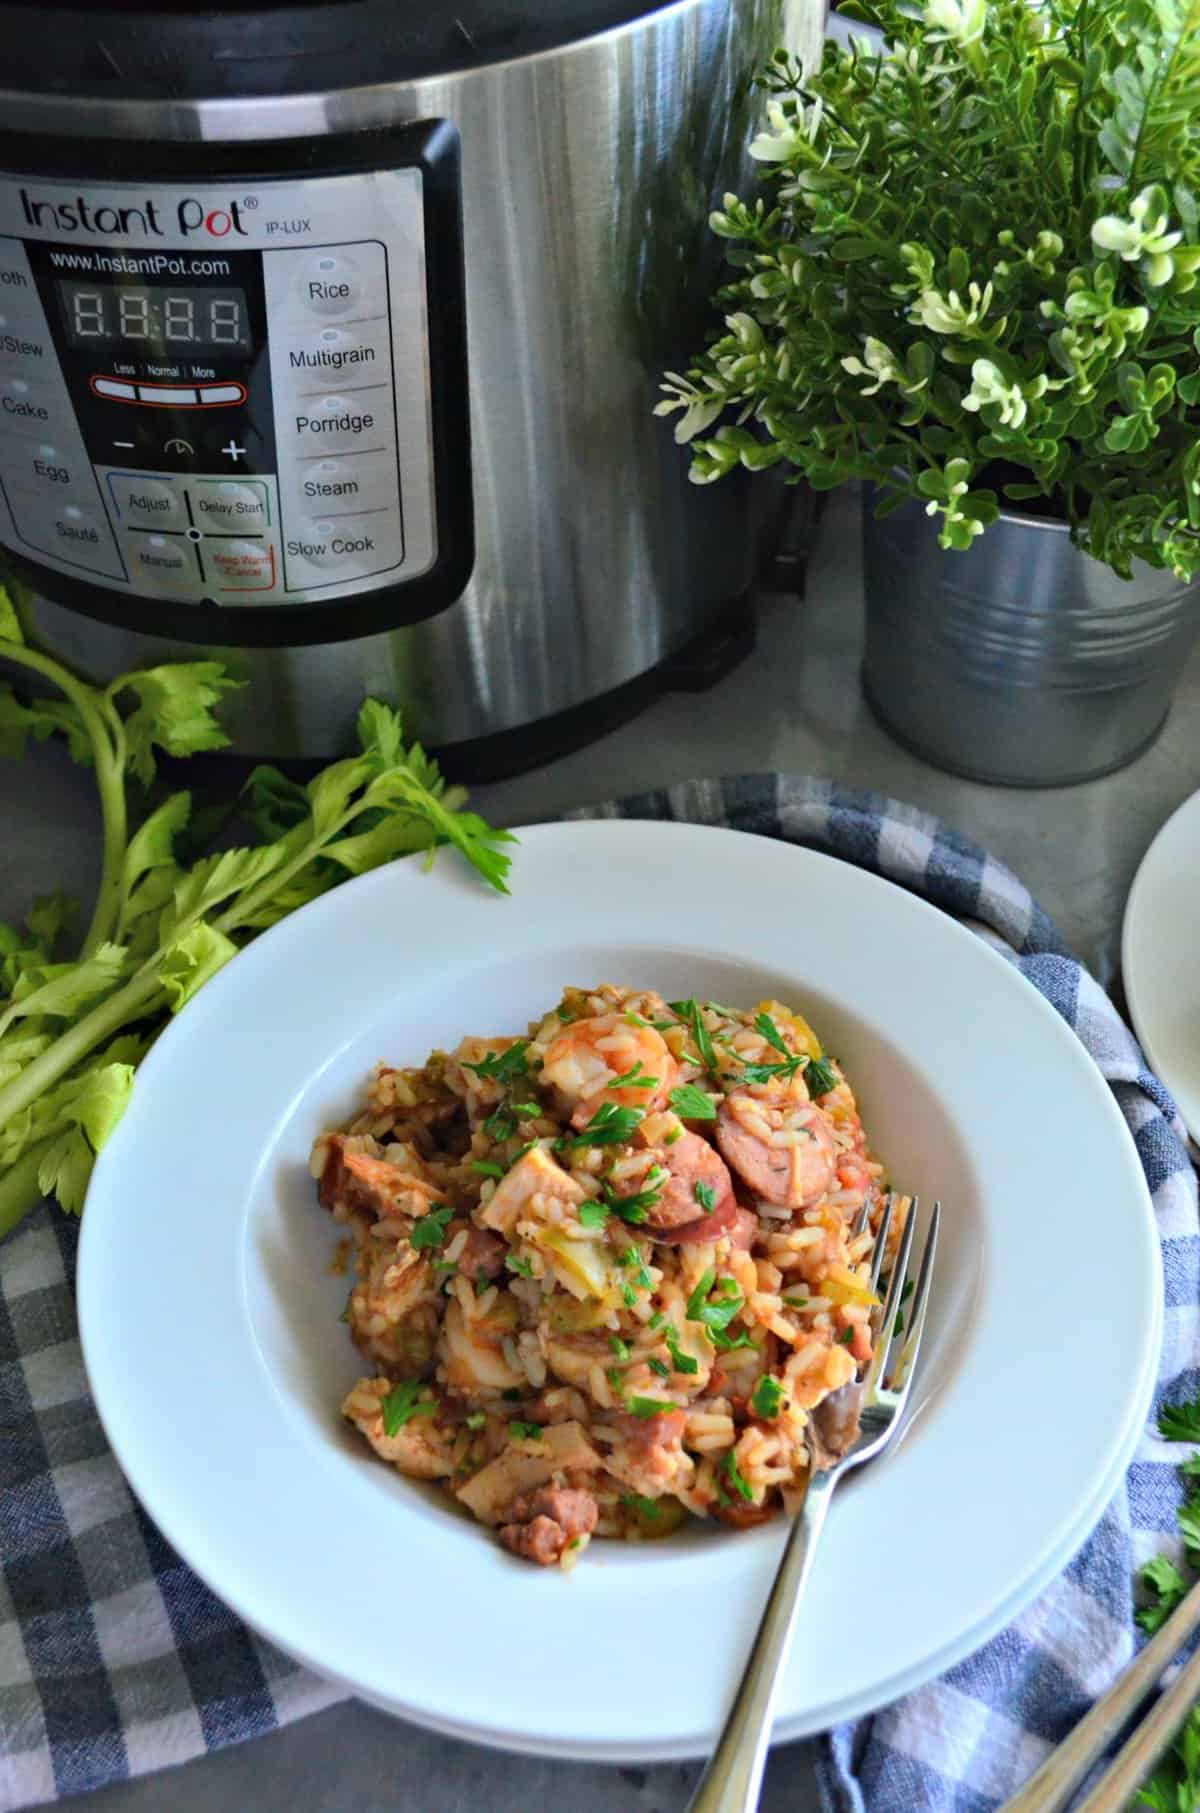 Instant Pot Chicken, Andouille Sausage, and Shrimp Jambalaya in a bowl with rice in front of instant pot.